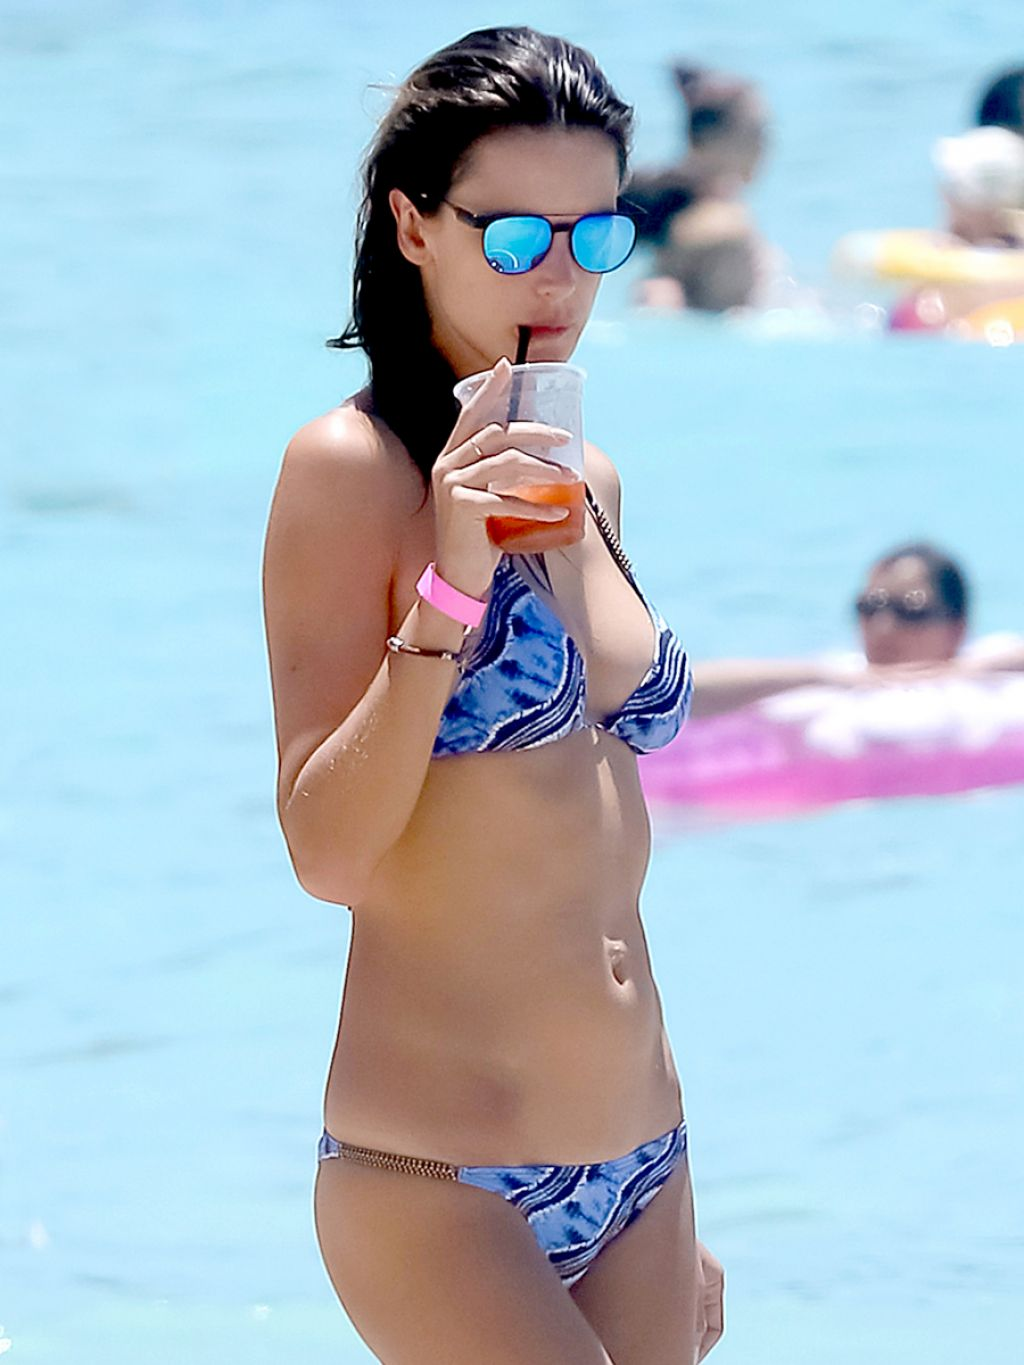 Alessandra Ambrosio Wearing a Bikini in Hawaii - August 2014